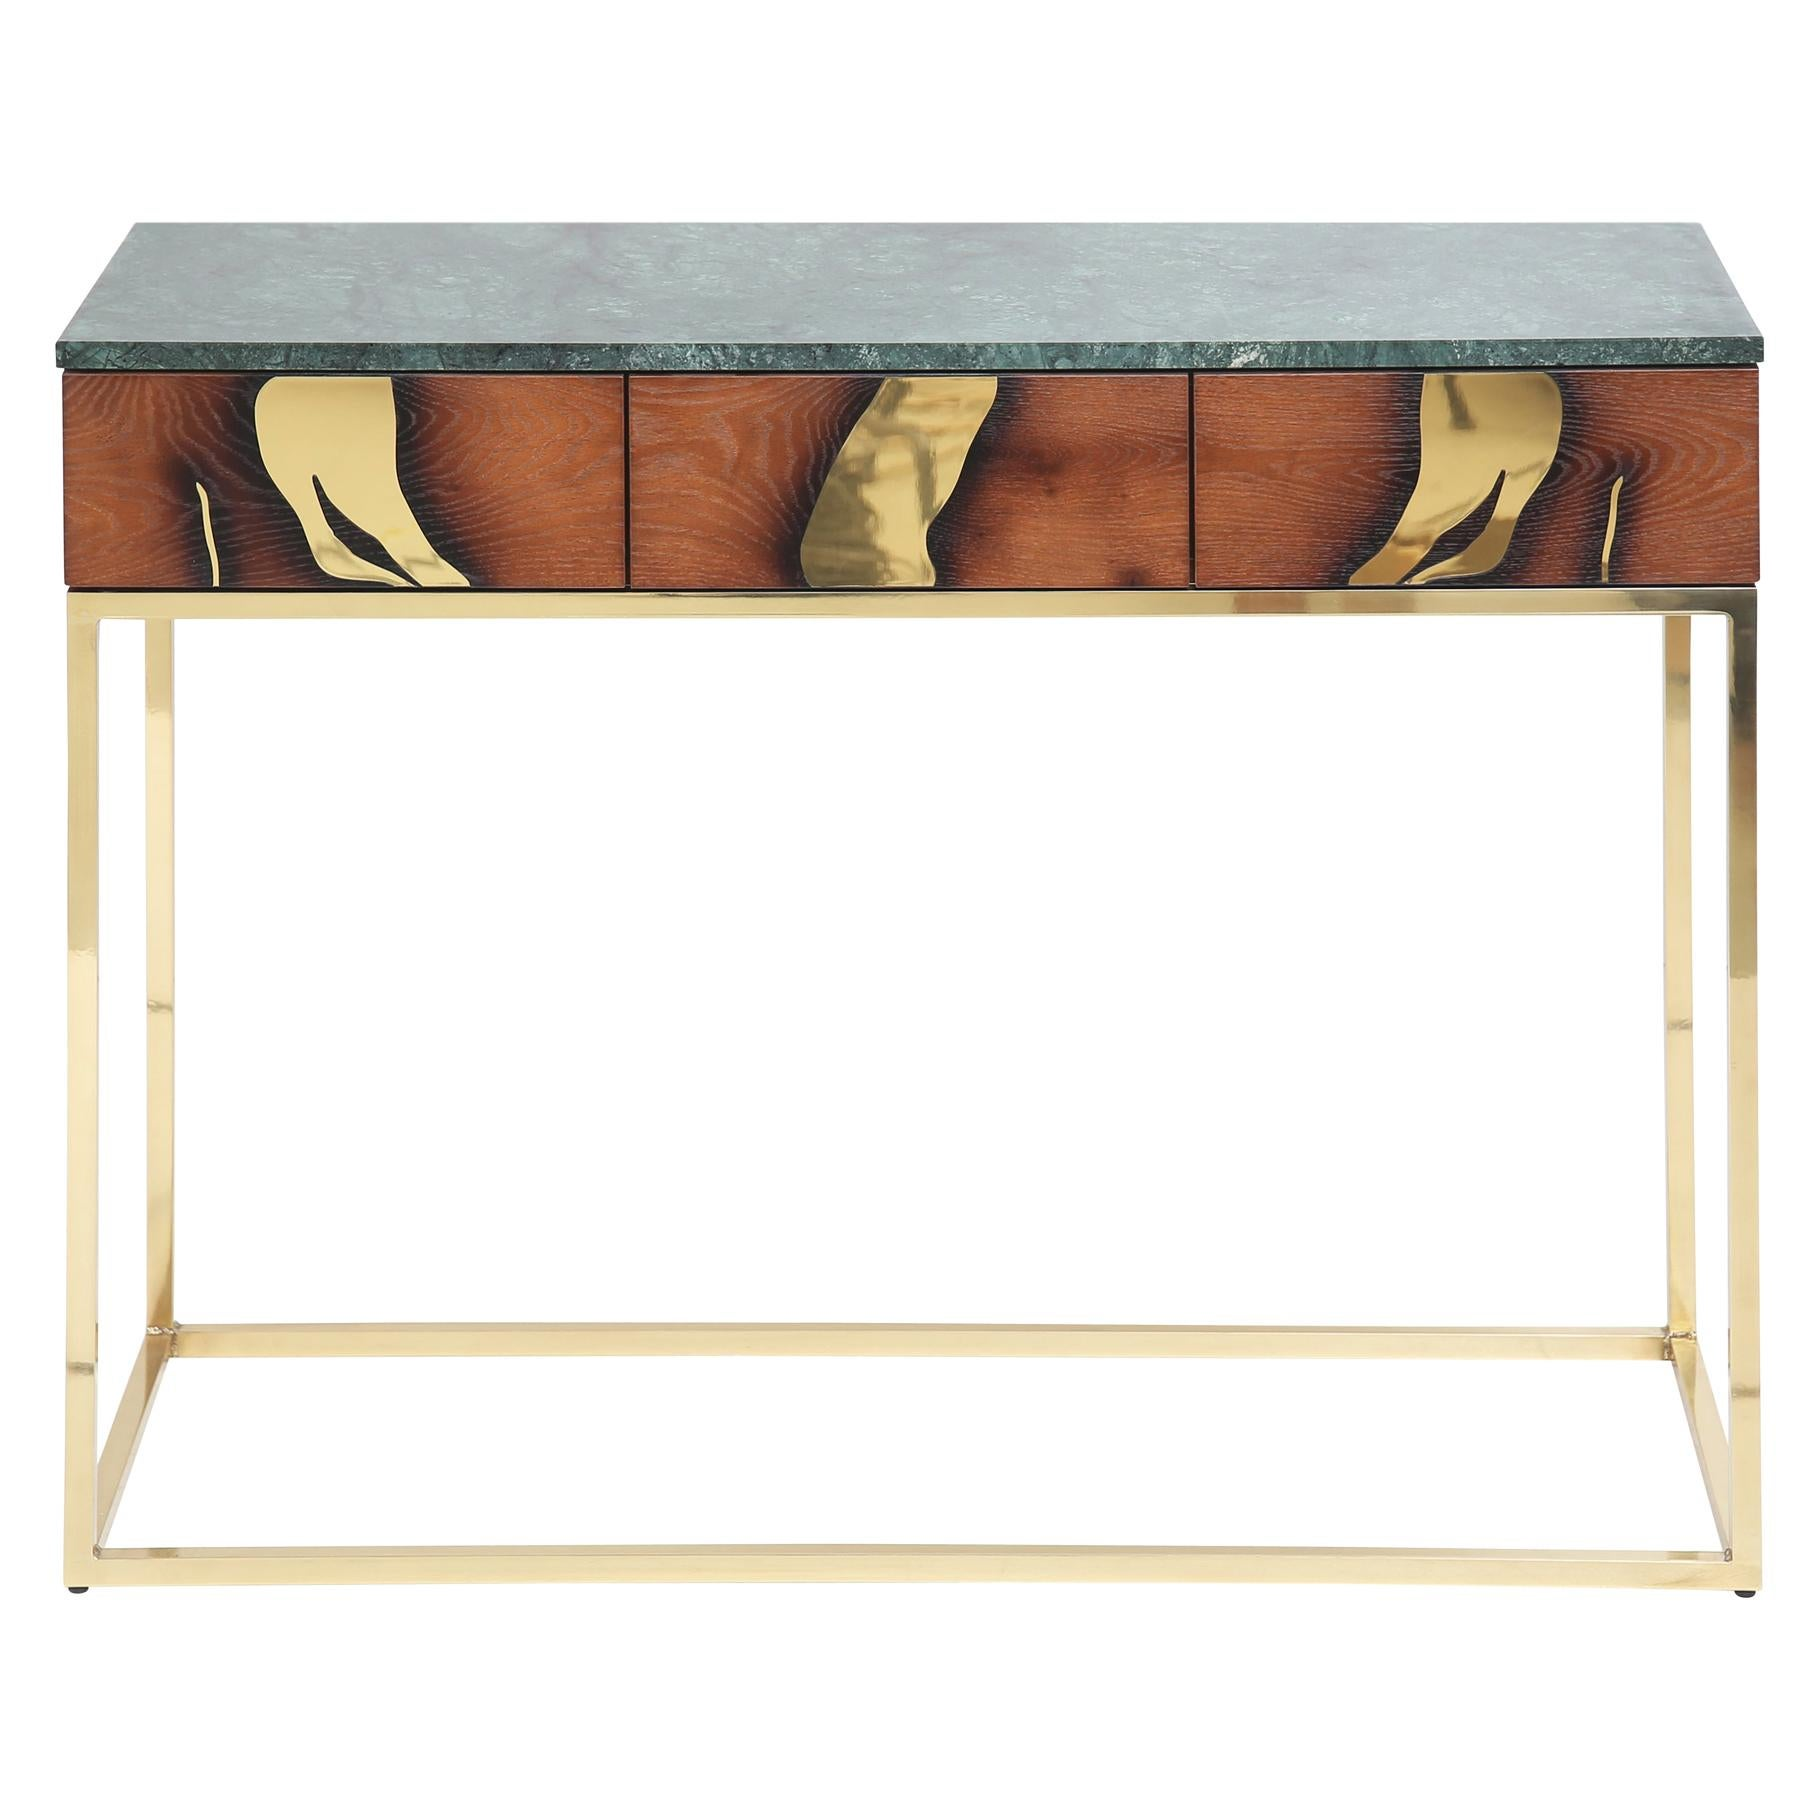 Contemporary Oxara Console Table with Oak Veneer in Brass, Marble